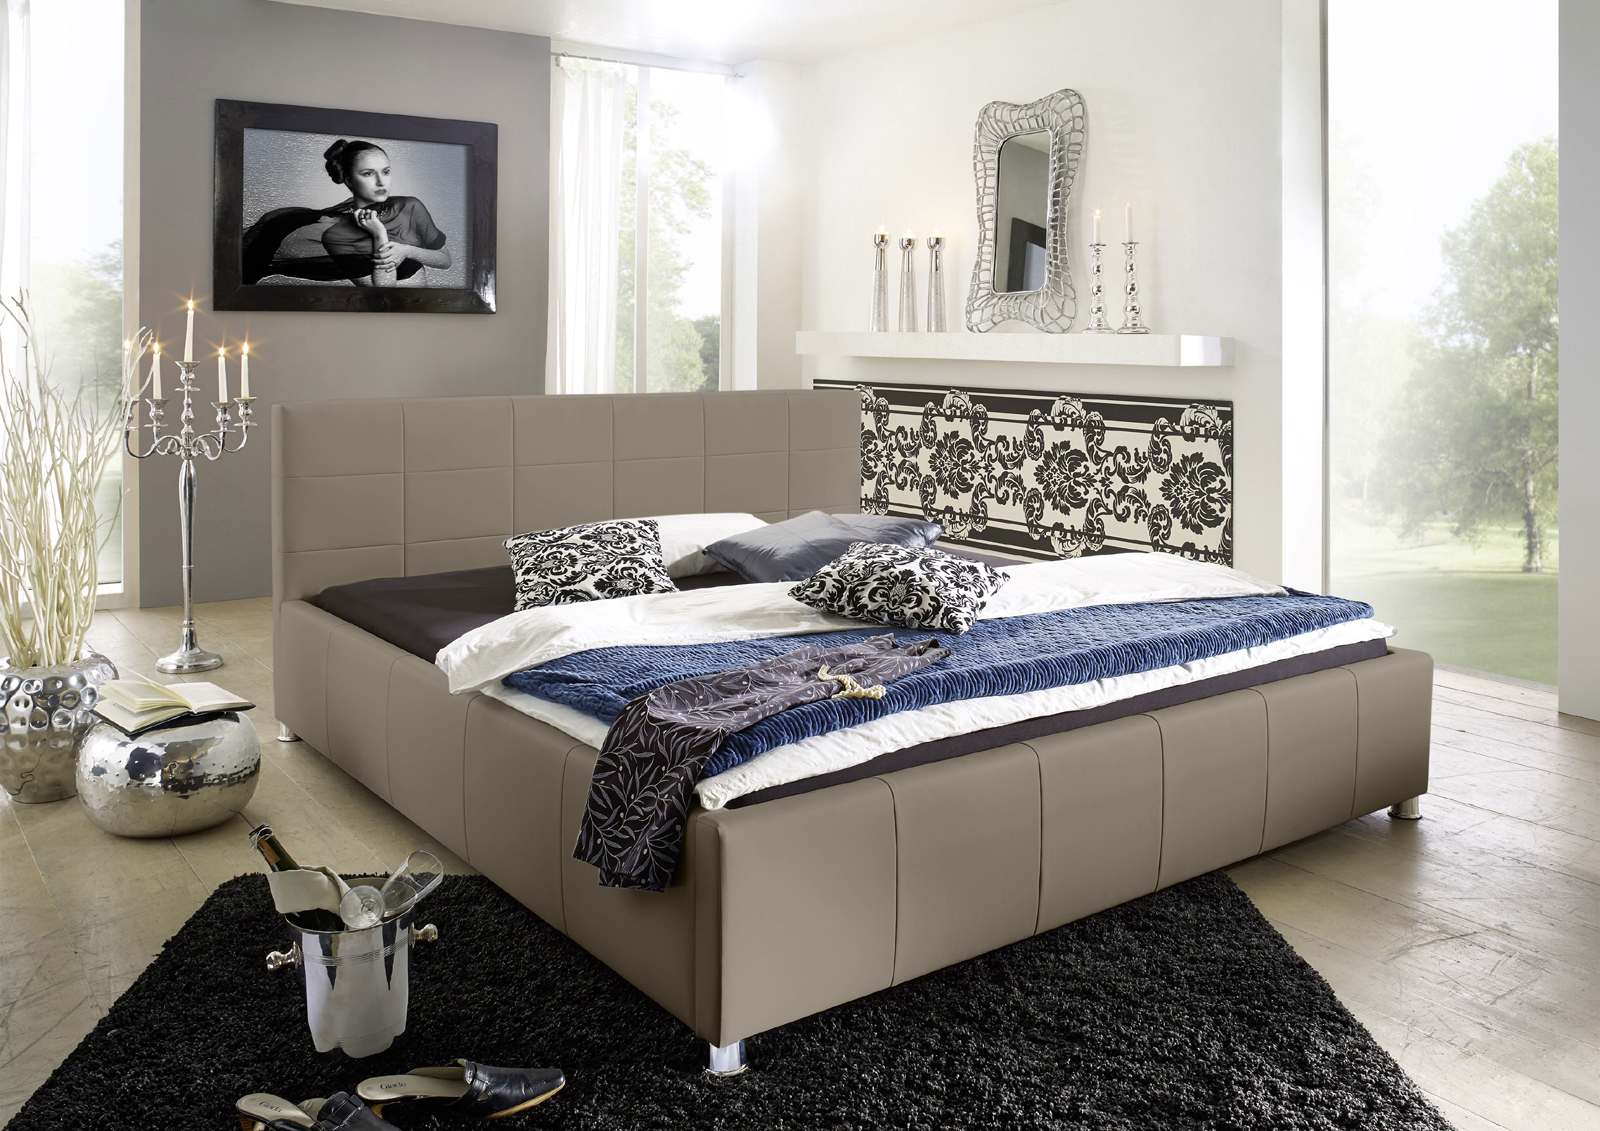 sam design bett 100 x 200 cm muddy kira g nstig. Black Bedroom Furniture Sets. Home Design Ideas